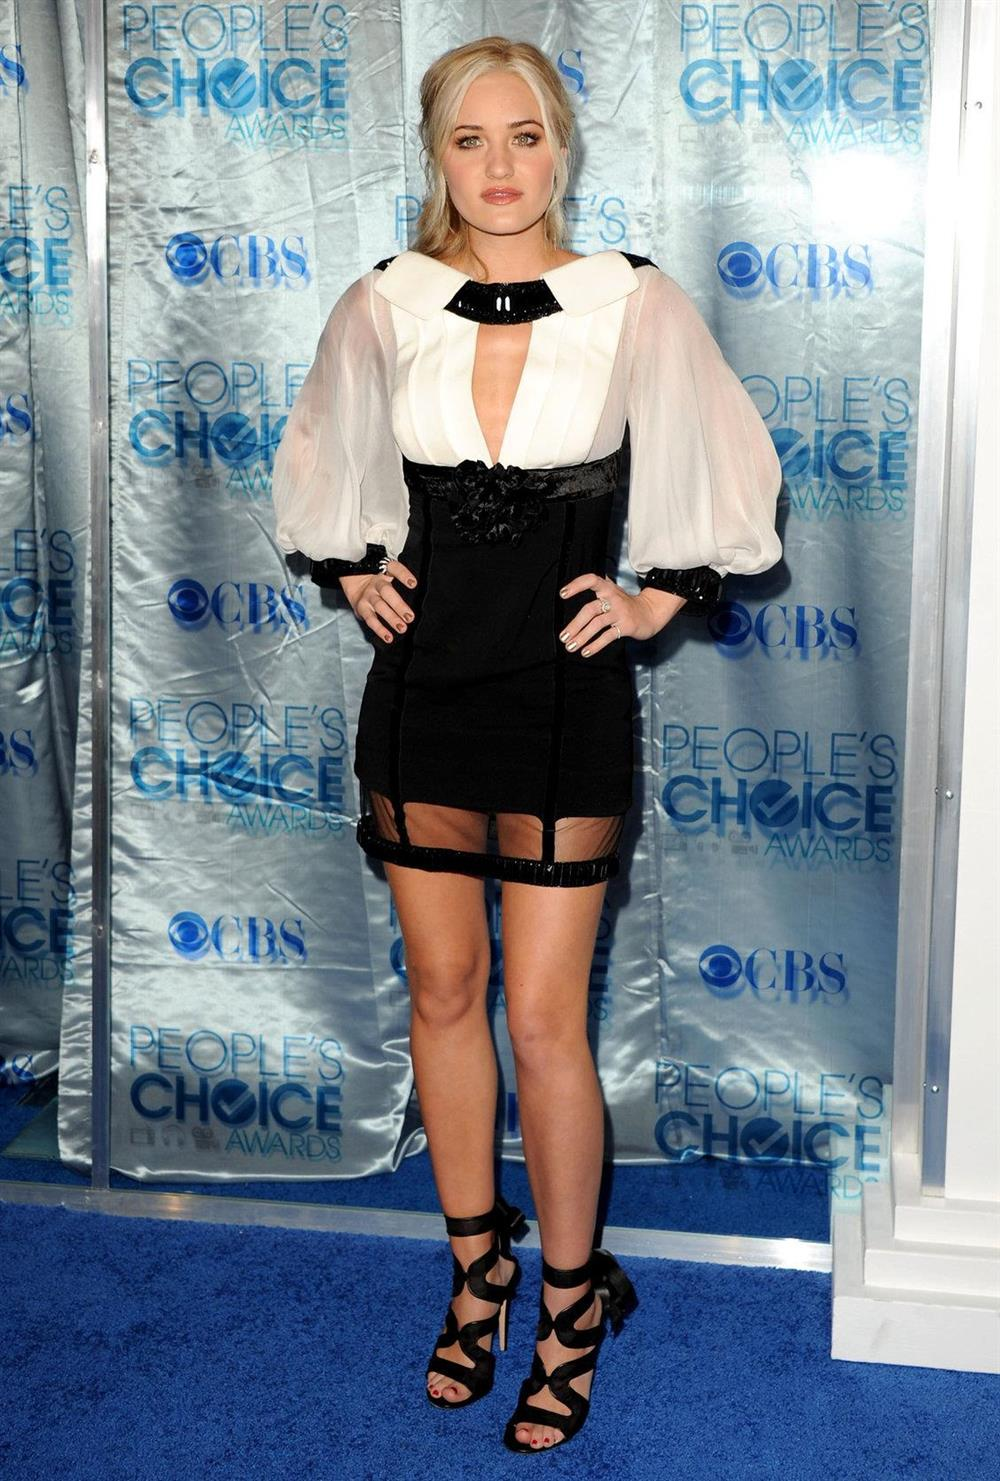 Amanda Michalka Attending The Peoples Choice Awards In Los Angeles On January 5, 2011-4912